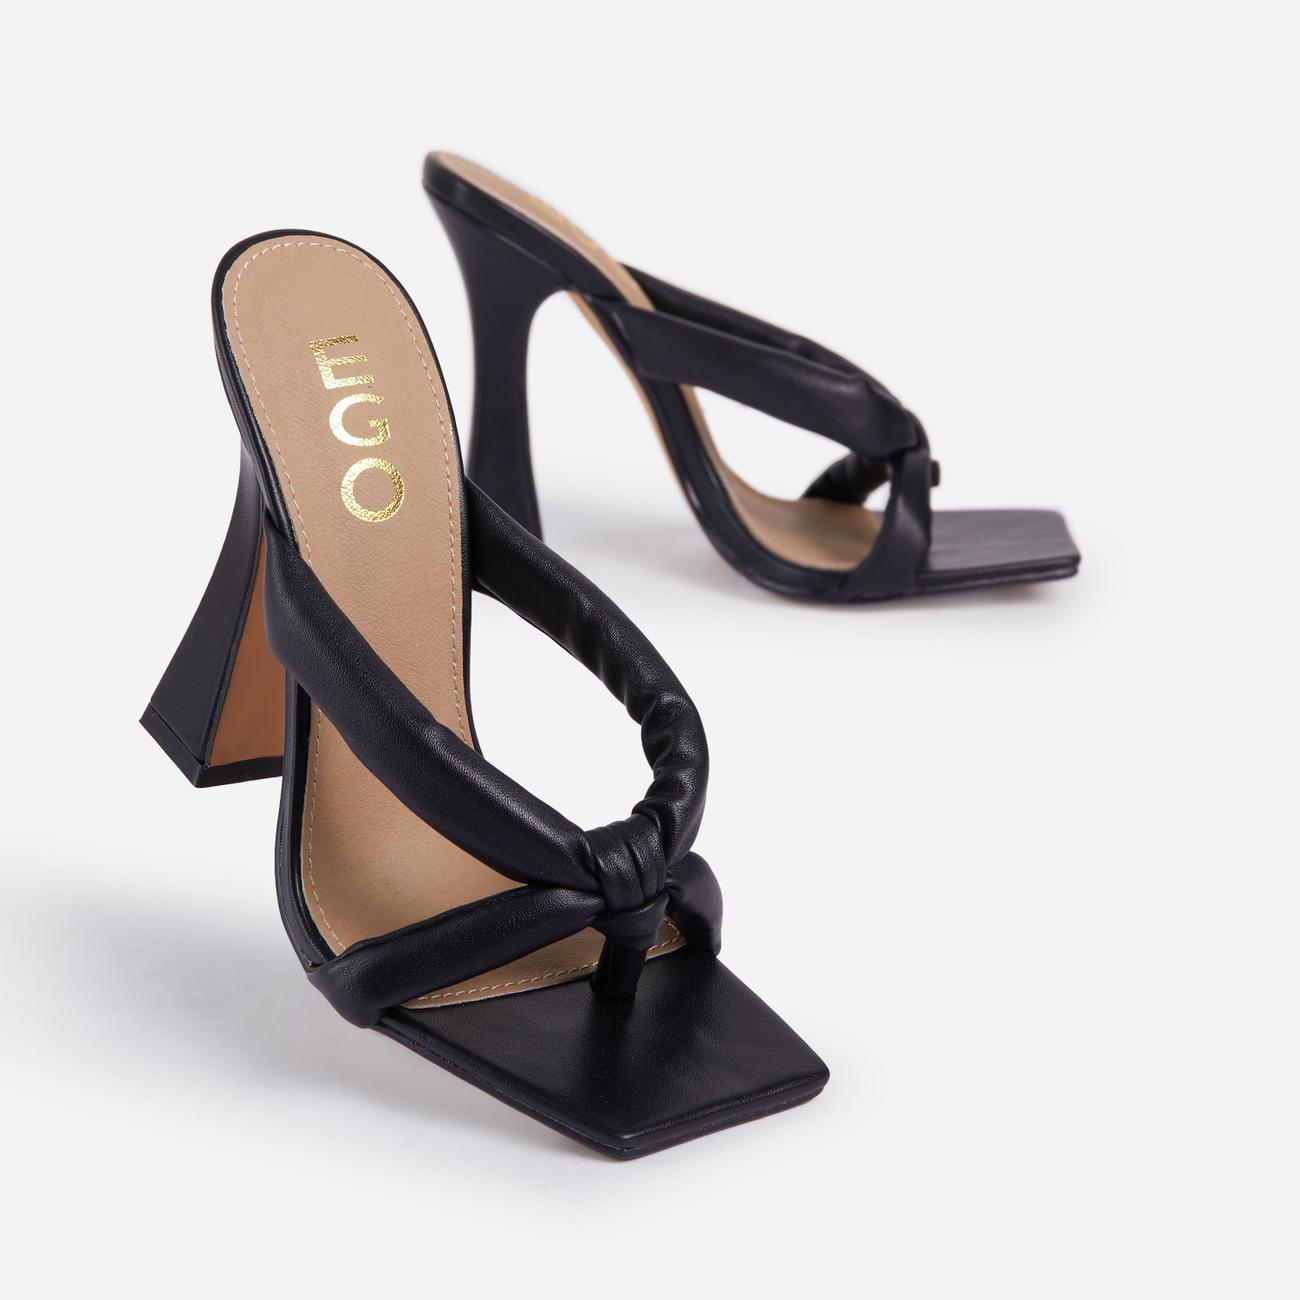 Loyal Padded Cross Strap Square Toe Heel Mule In Black Faux Leather Image 5